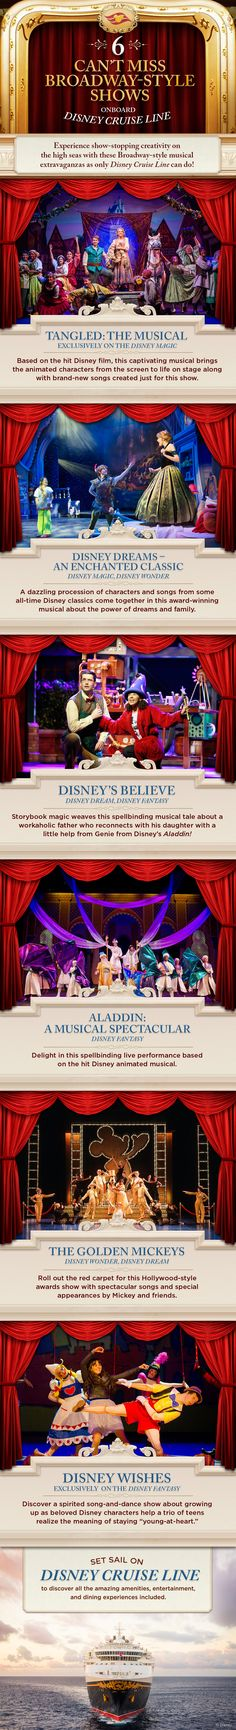 Experience show-stopping creativity on the high seas with these Broadway-style musical extravaganzas as only Disney Cruise Line can do! Click to learn more about our entertainment and live show offerings.